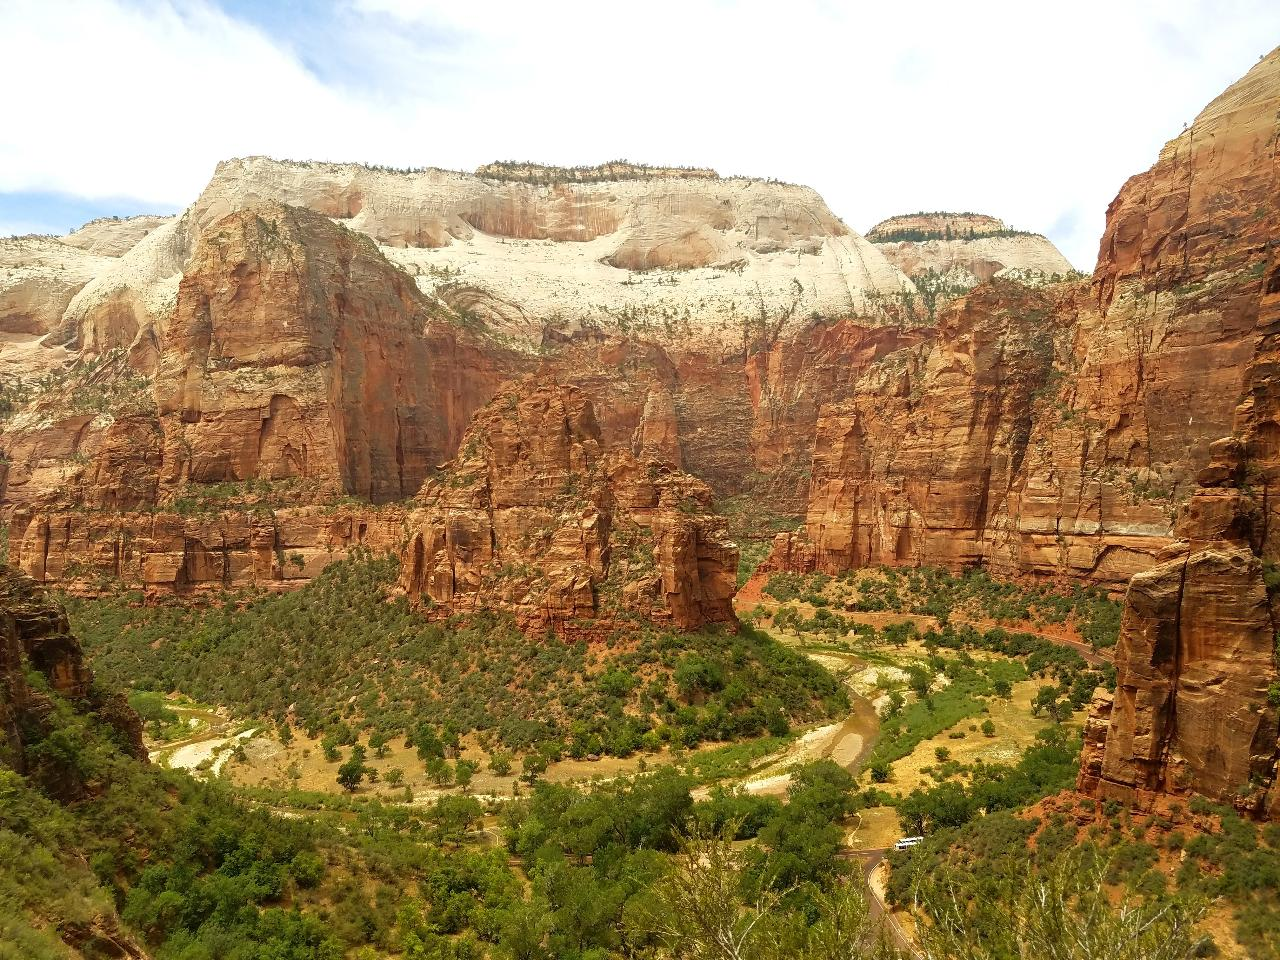 One-way Shuttle: Las Vegas to Zion National Park